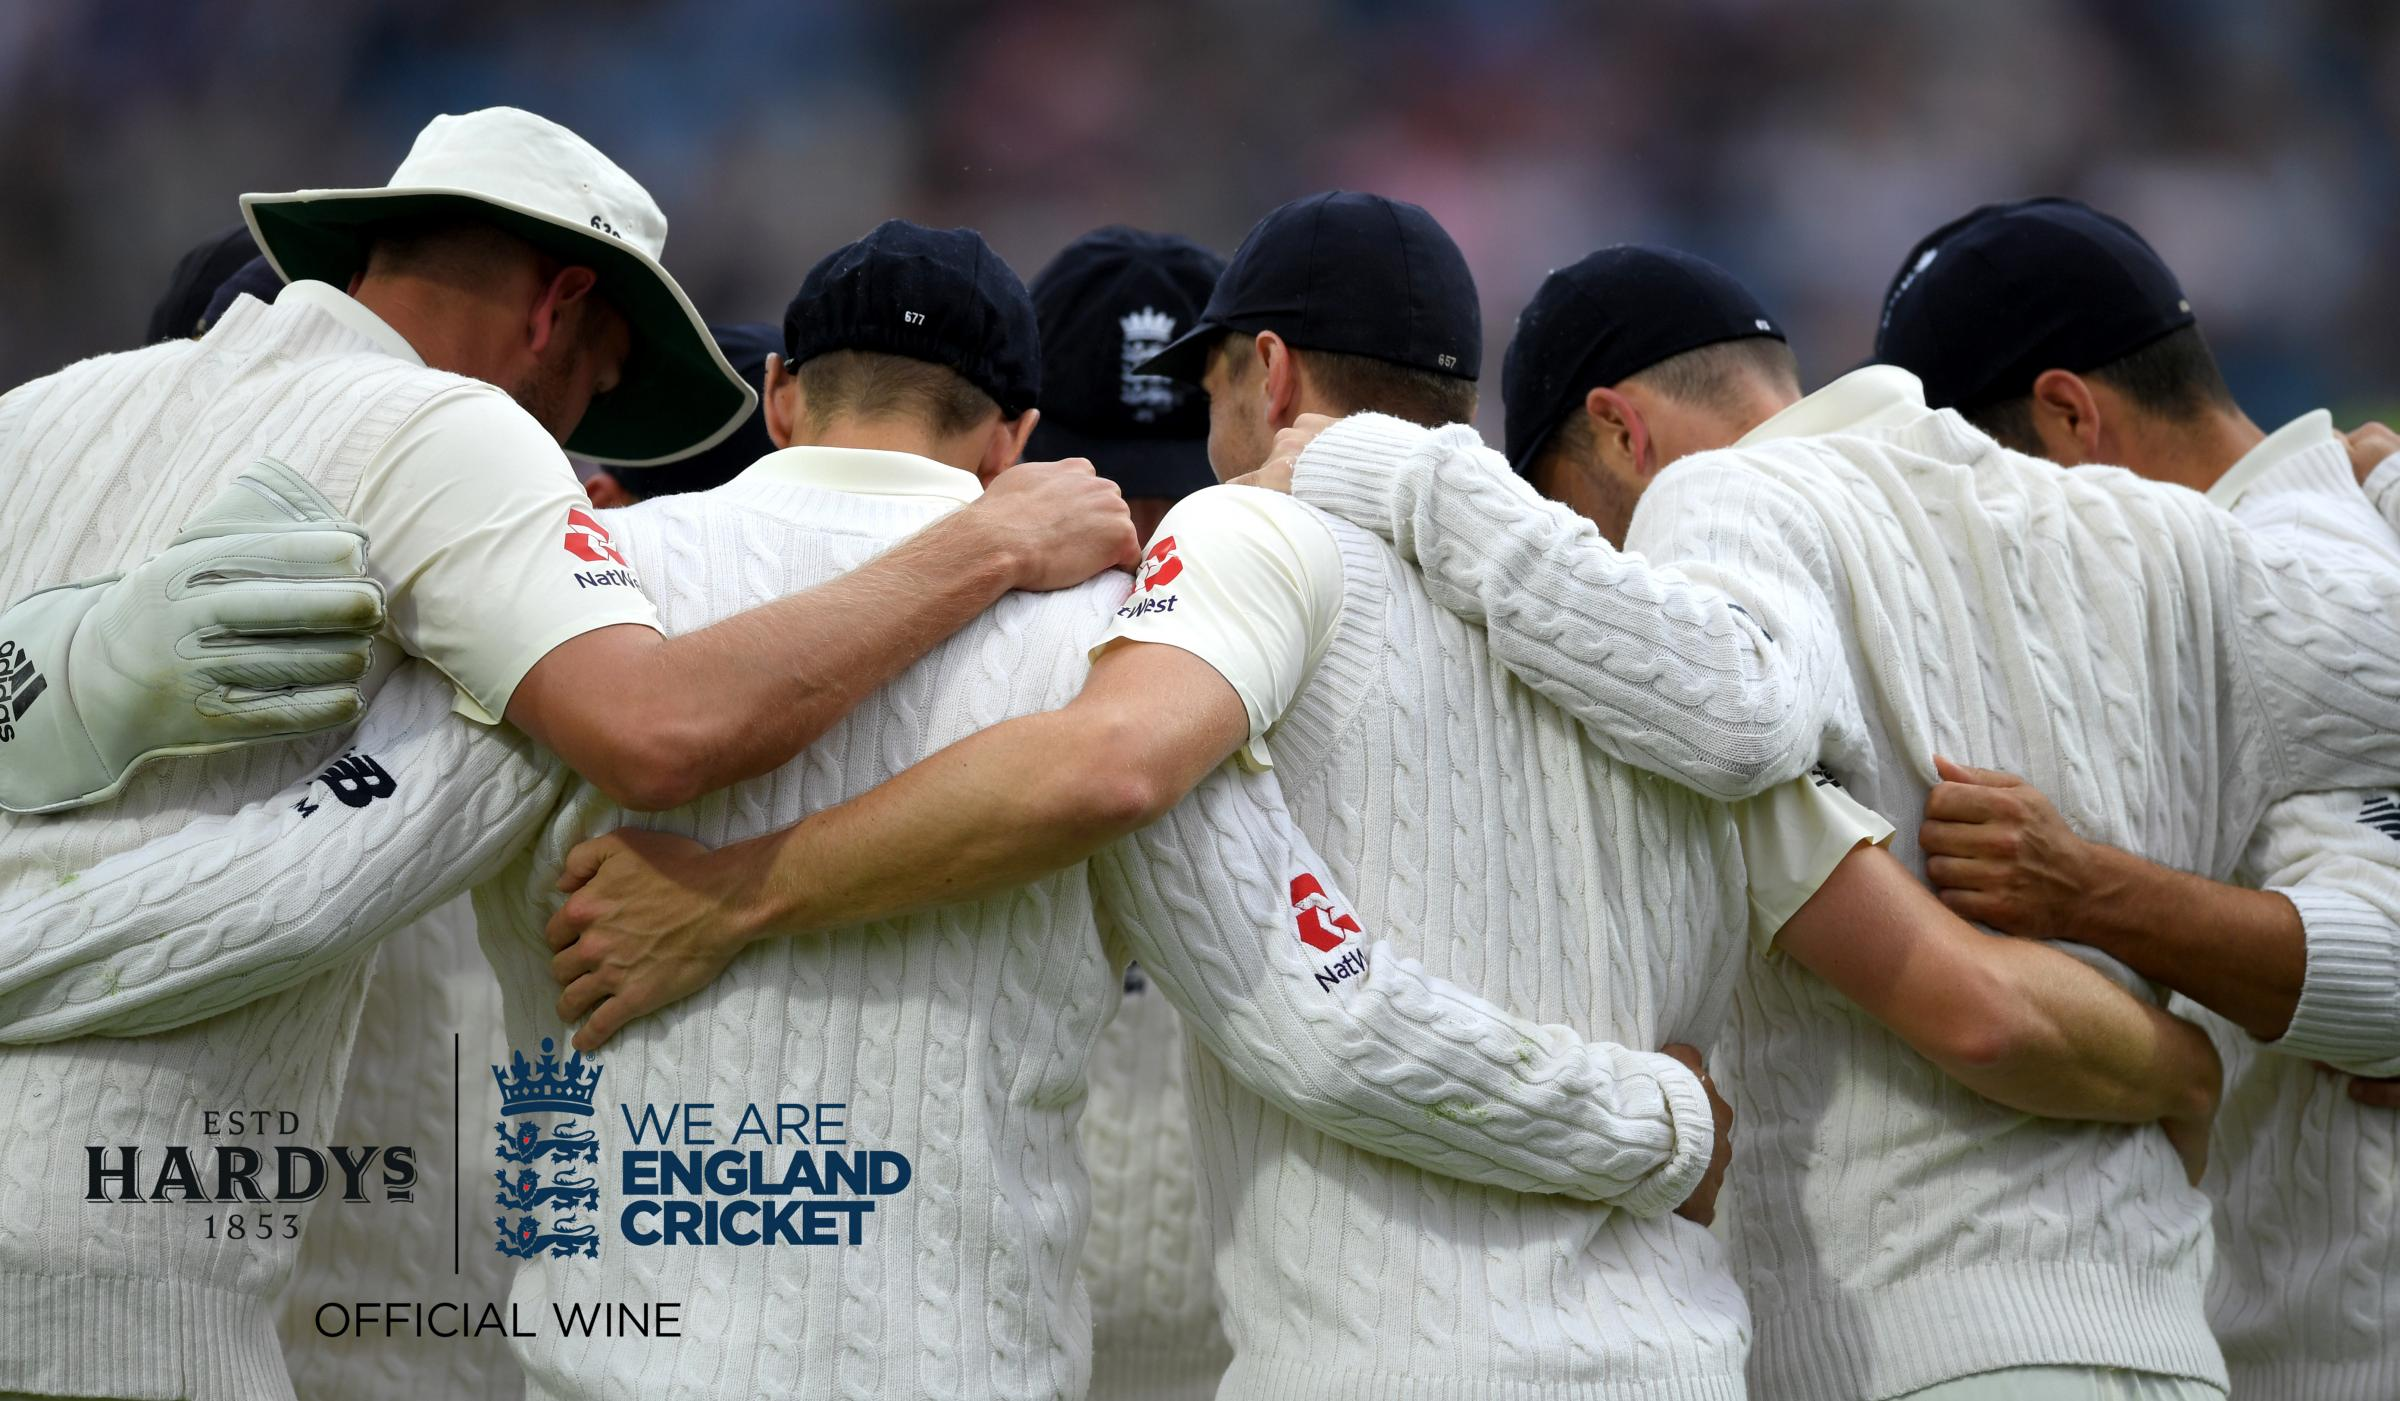 Win England ODI Tickets